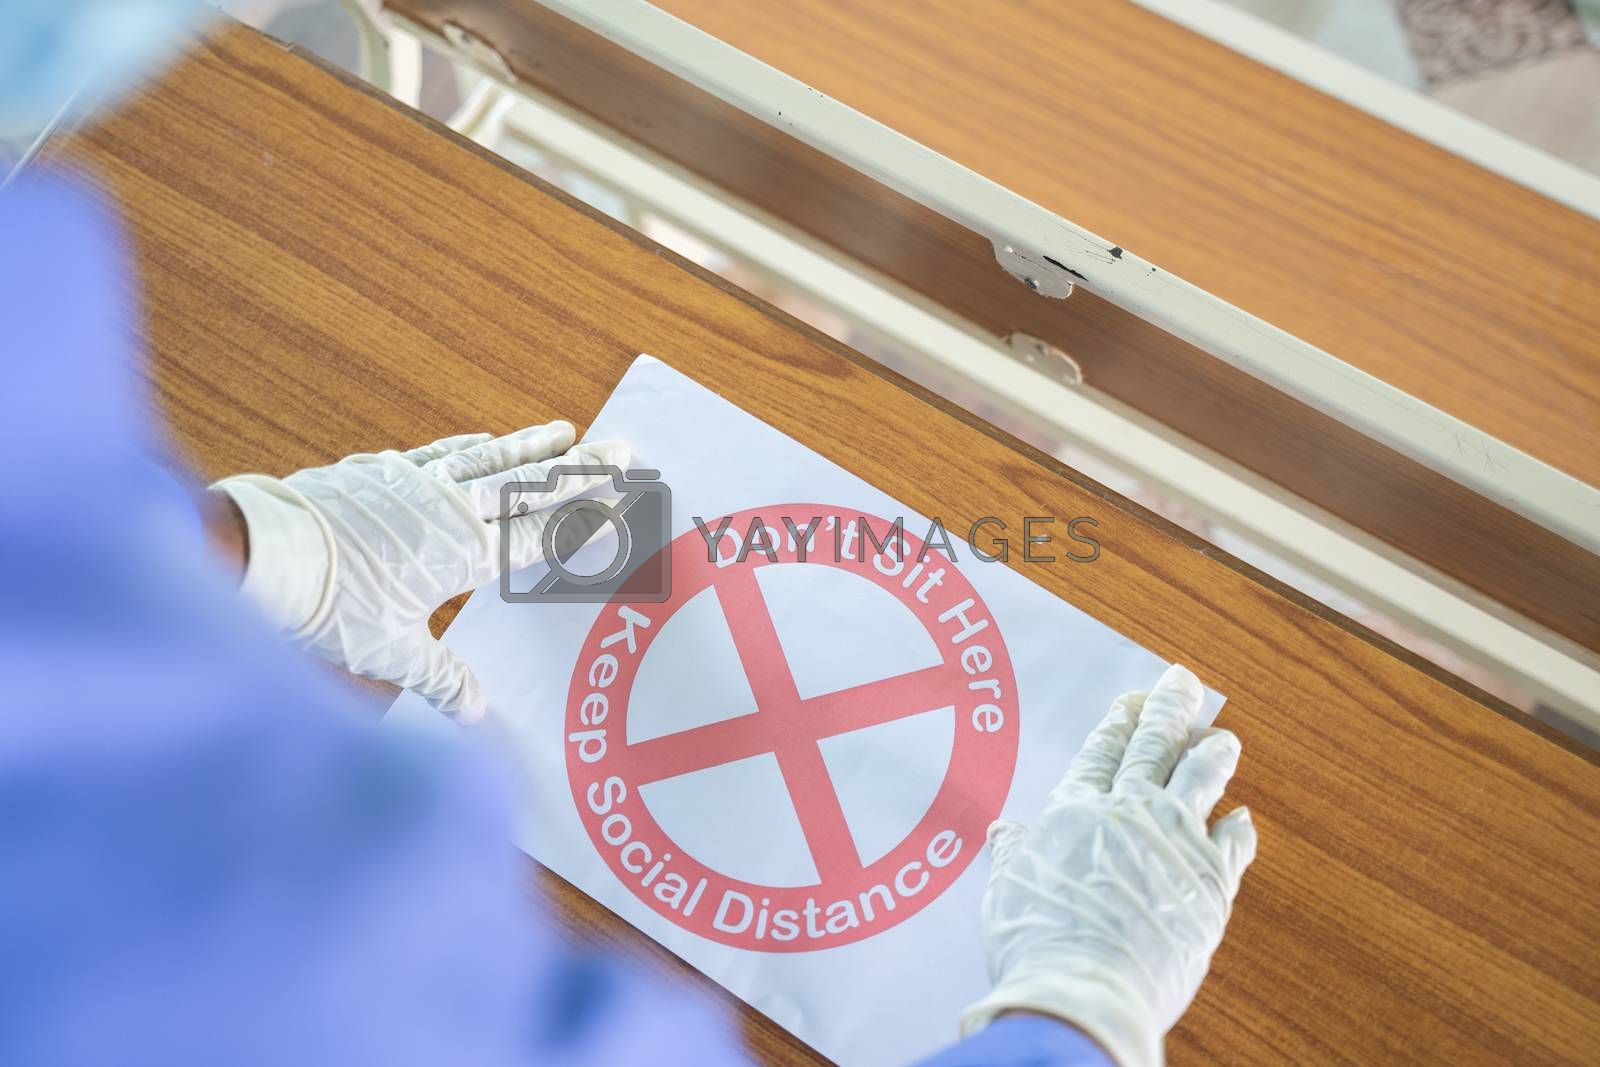 Royalty free image of Shoulder shot of man with medical mask and hand gloves pasting dont sit here keep social distance signage poster on desk surface as coronavirus or covid-19 safety measures at school or college by lakshmiprasad.maski@gmai.com